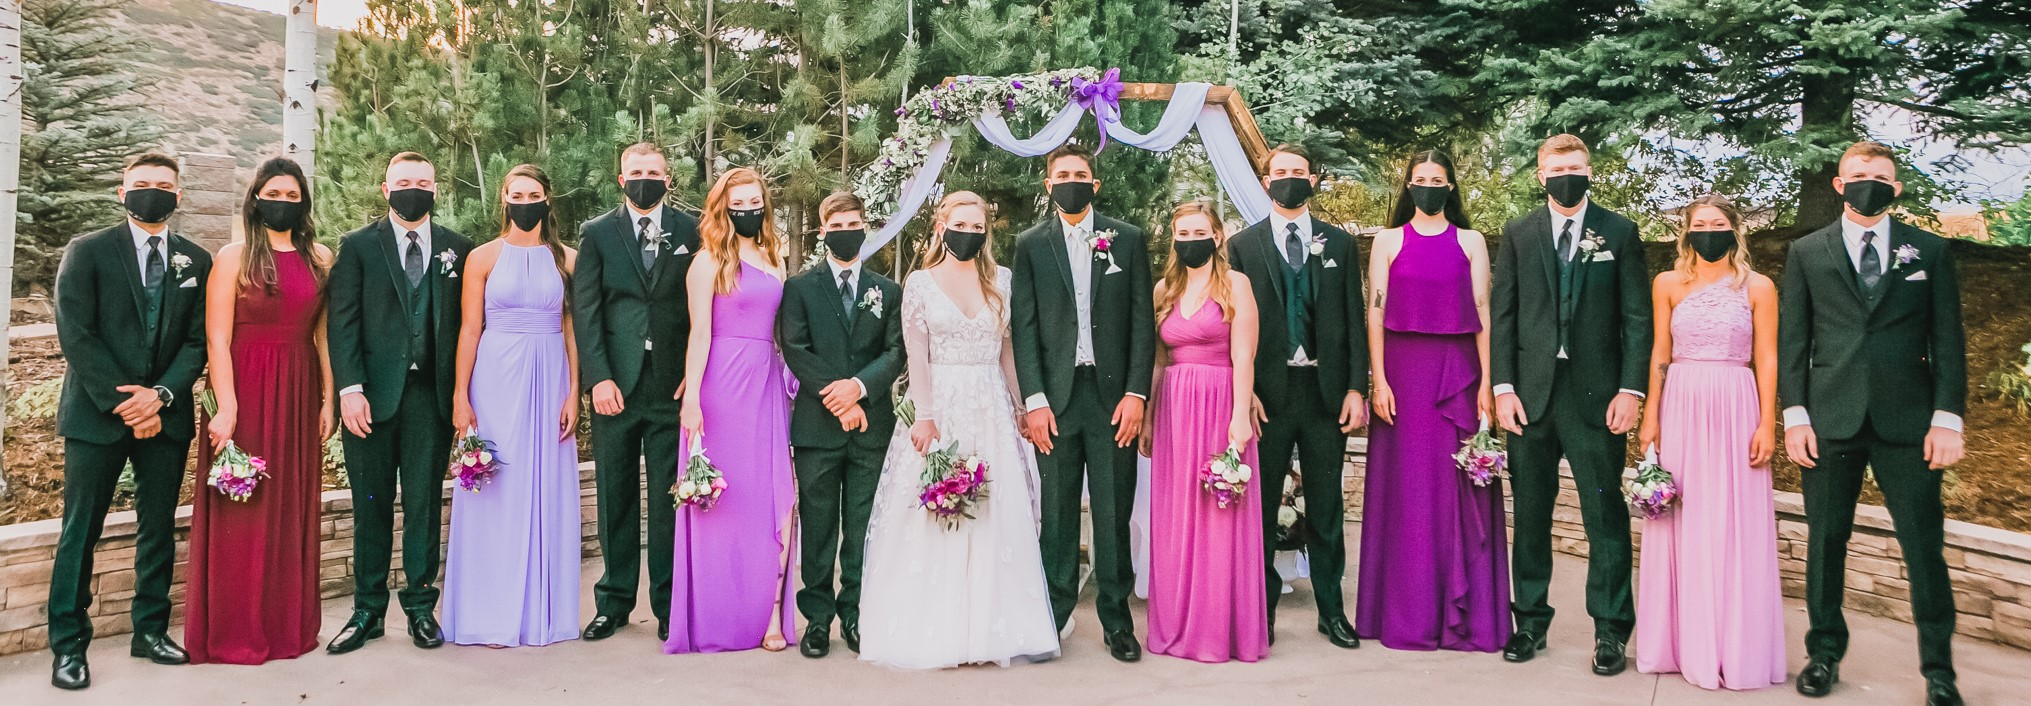 2020 Wedding Wearing Masks are Required